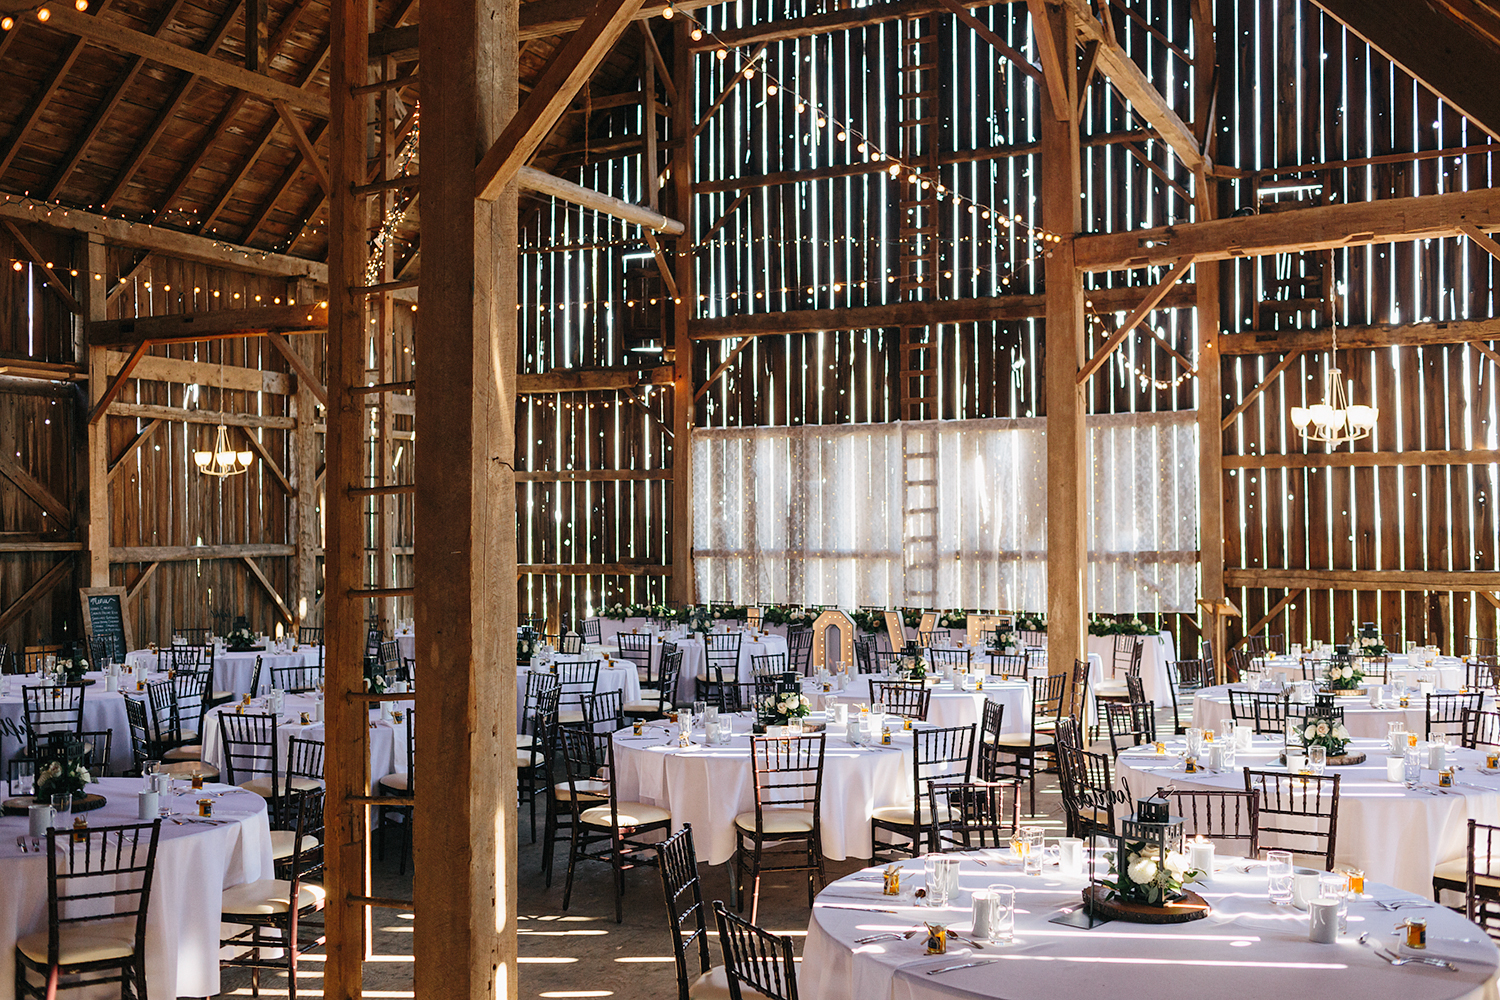 Photojournalistic-Wedding-Photographers-in-Toronto-Candid-Natural-Dowswell-Barn-Wedding-Rustic-GTA-Muskoka-Farm-details-tablescapes-rustic-diy-wood-epic-beautiful-barn.jpg